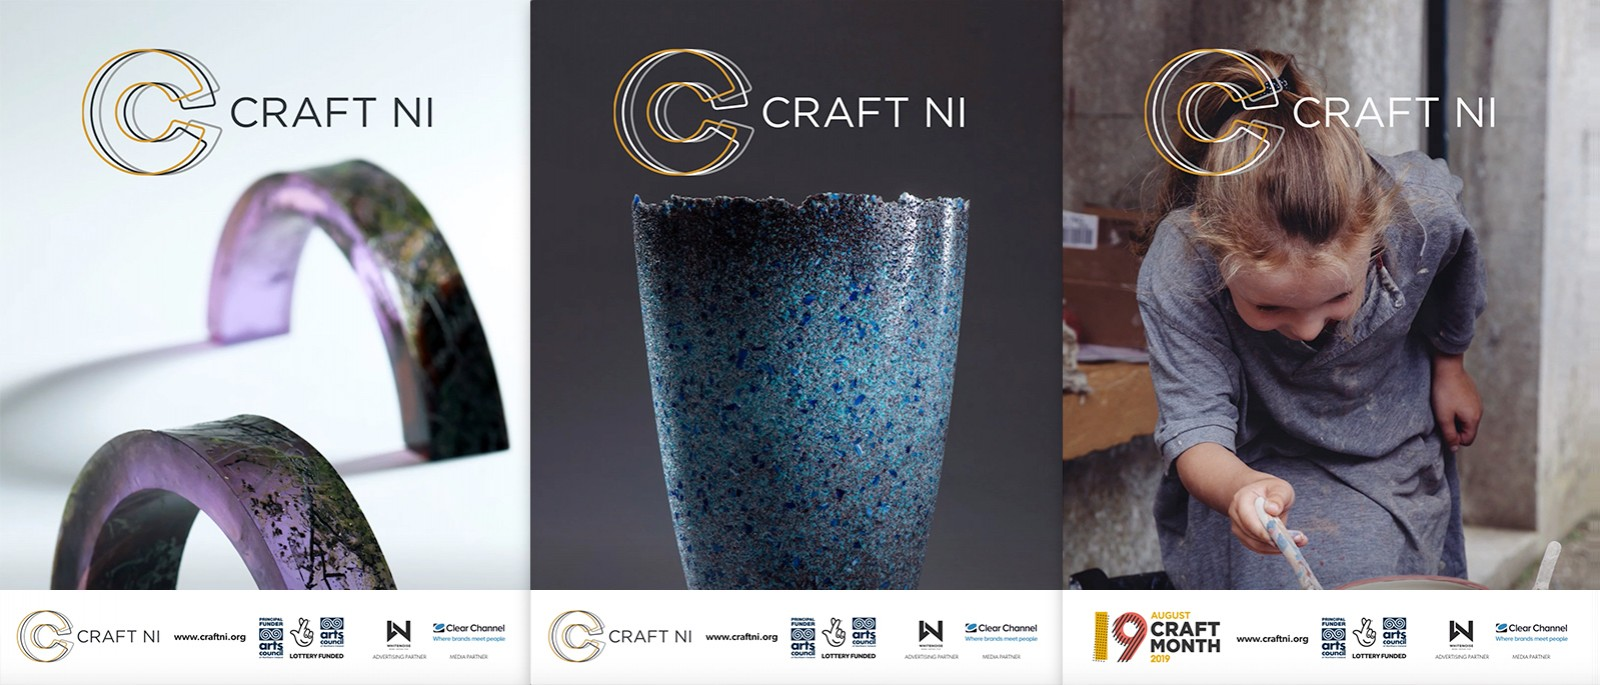 We're getting crafty with Craft NI...